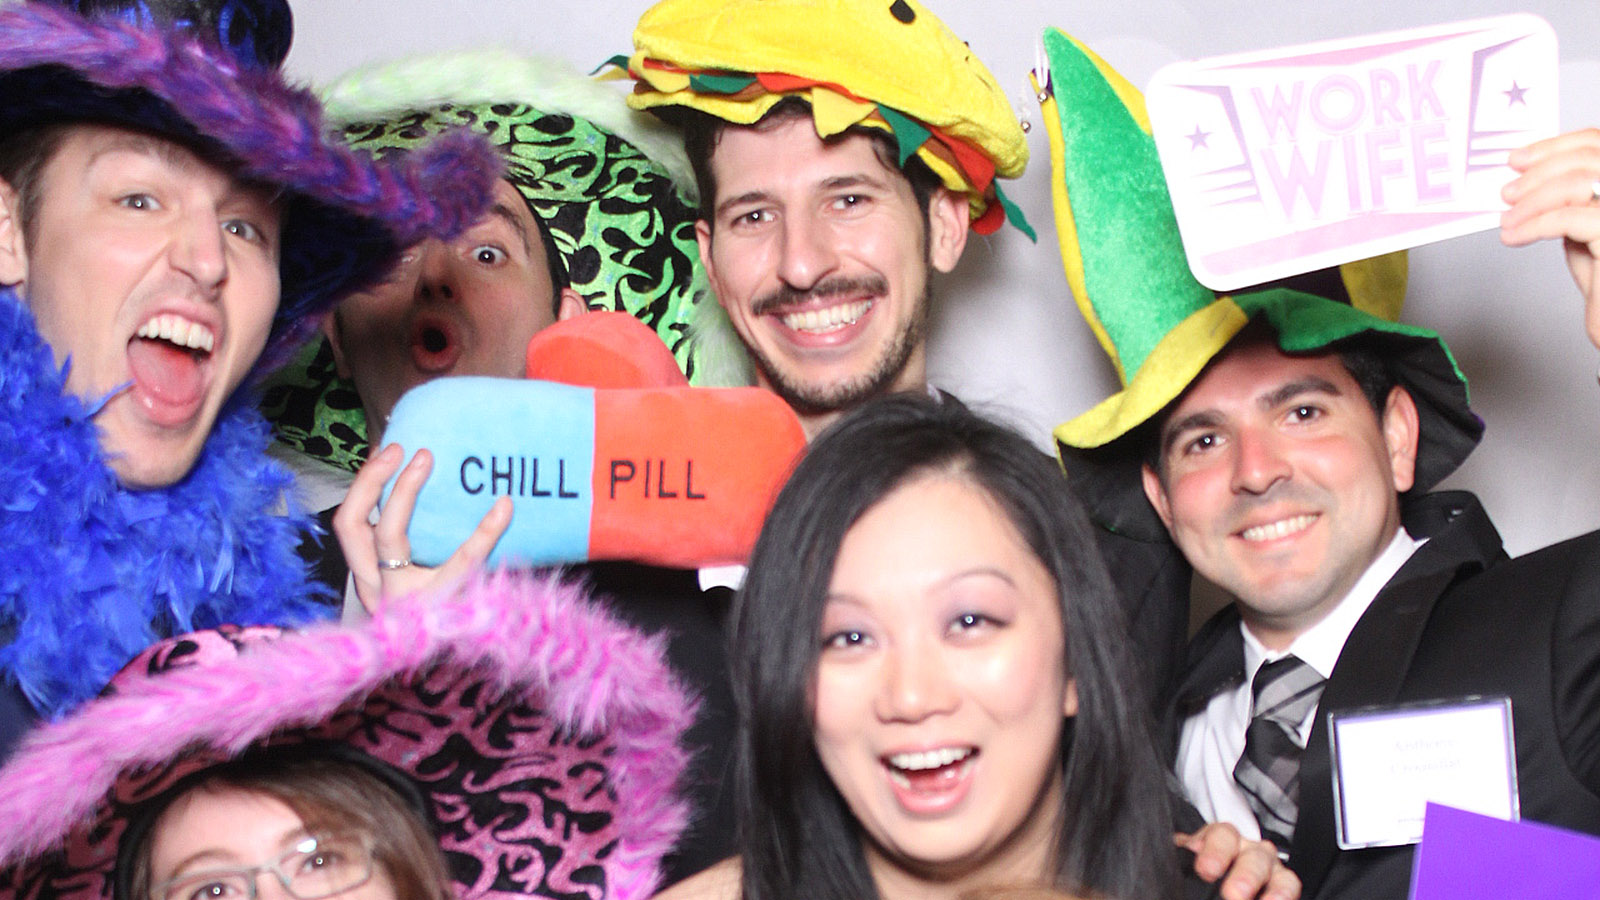 infinity-mirror-photo-booth-rental-2-16x9h-by-212-photo-booth-a2z-party